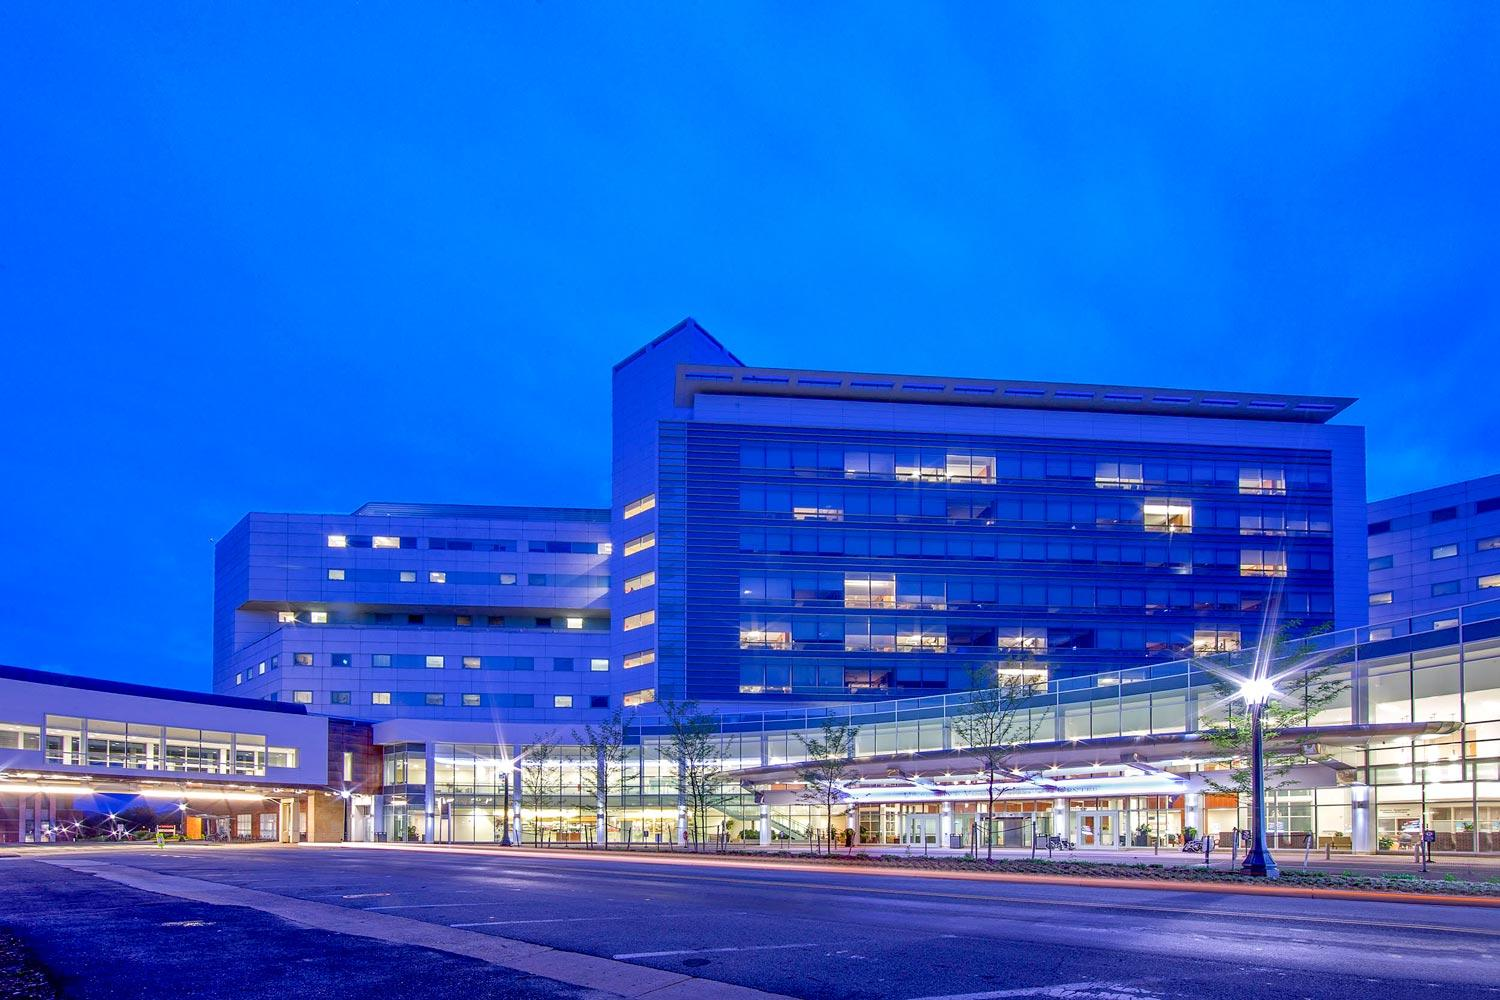 UVA Honored on National '100 Great Hospitals' List